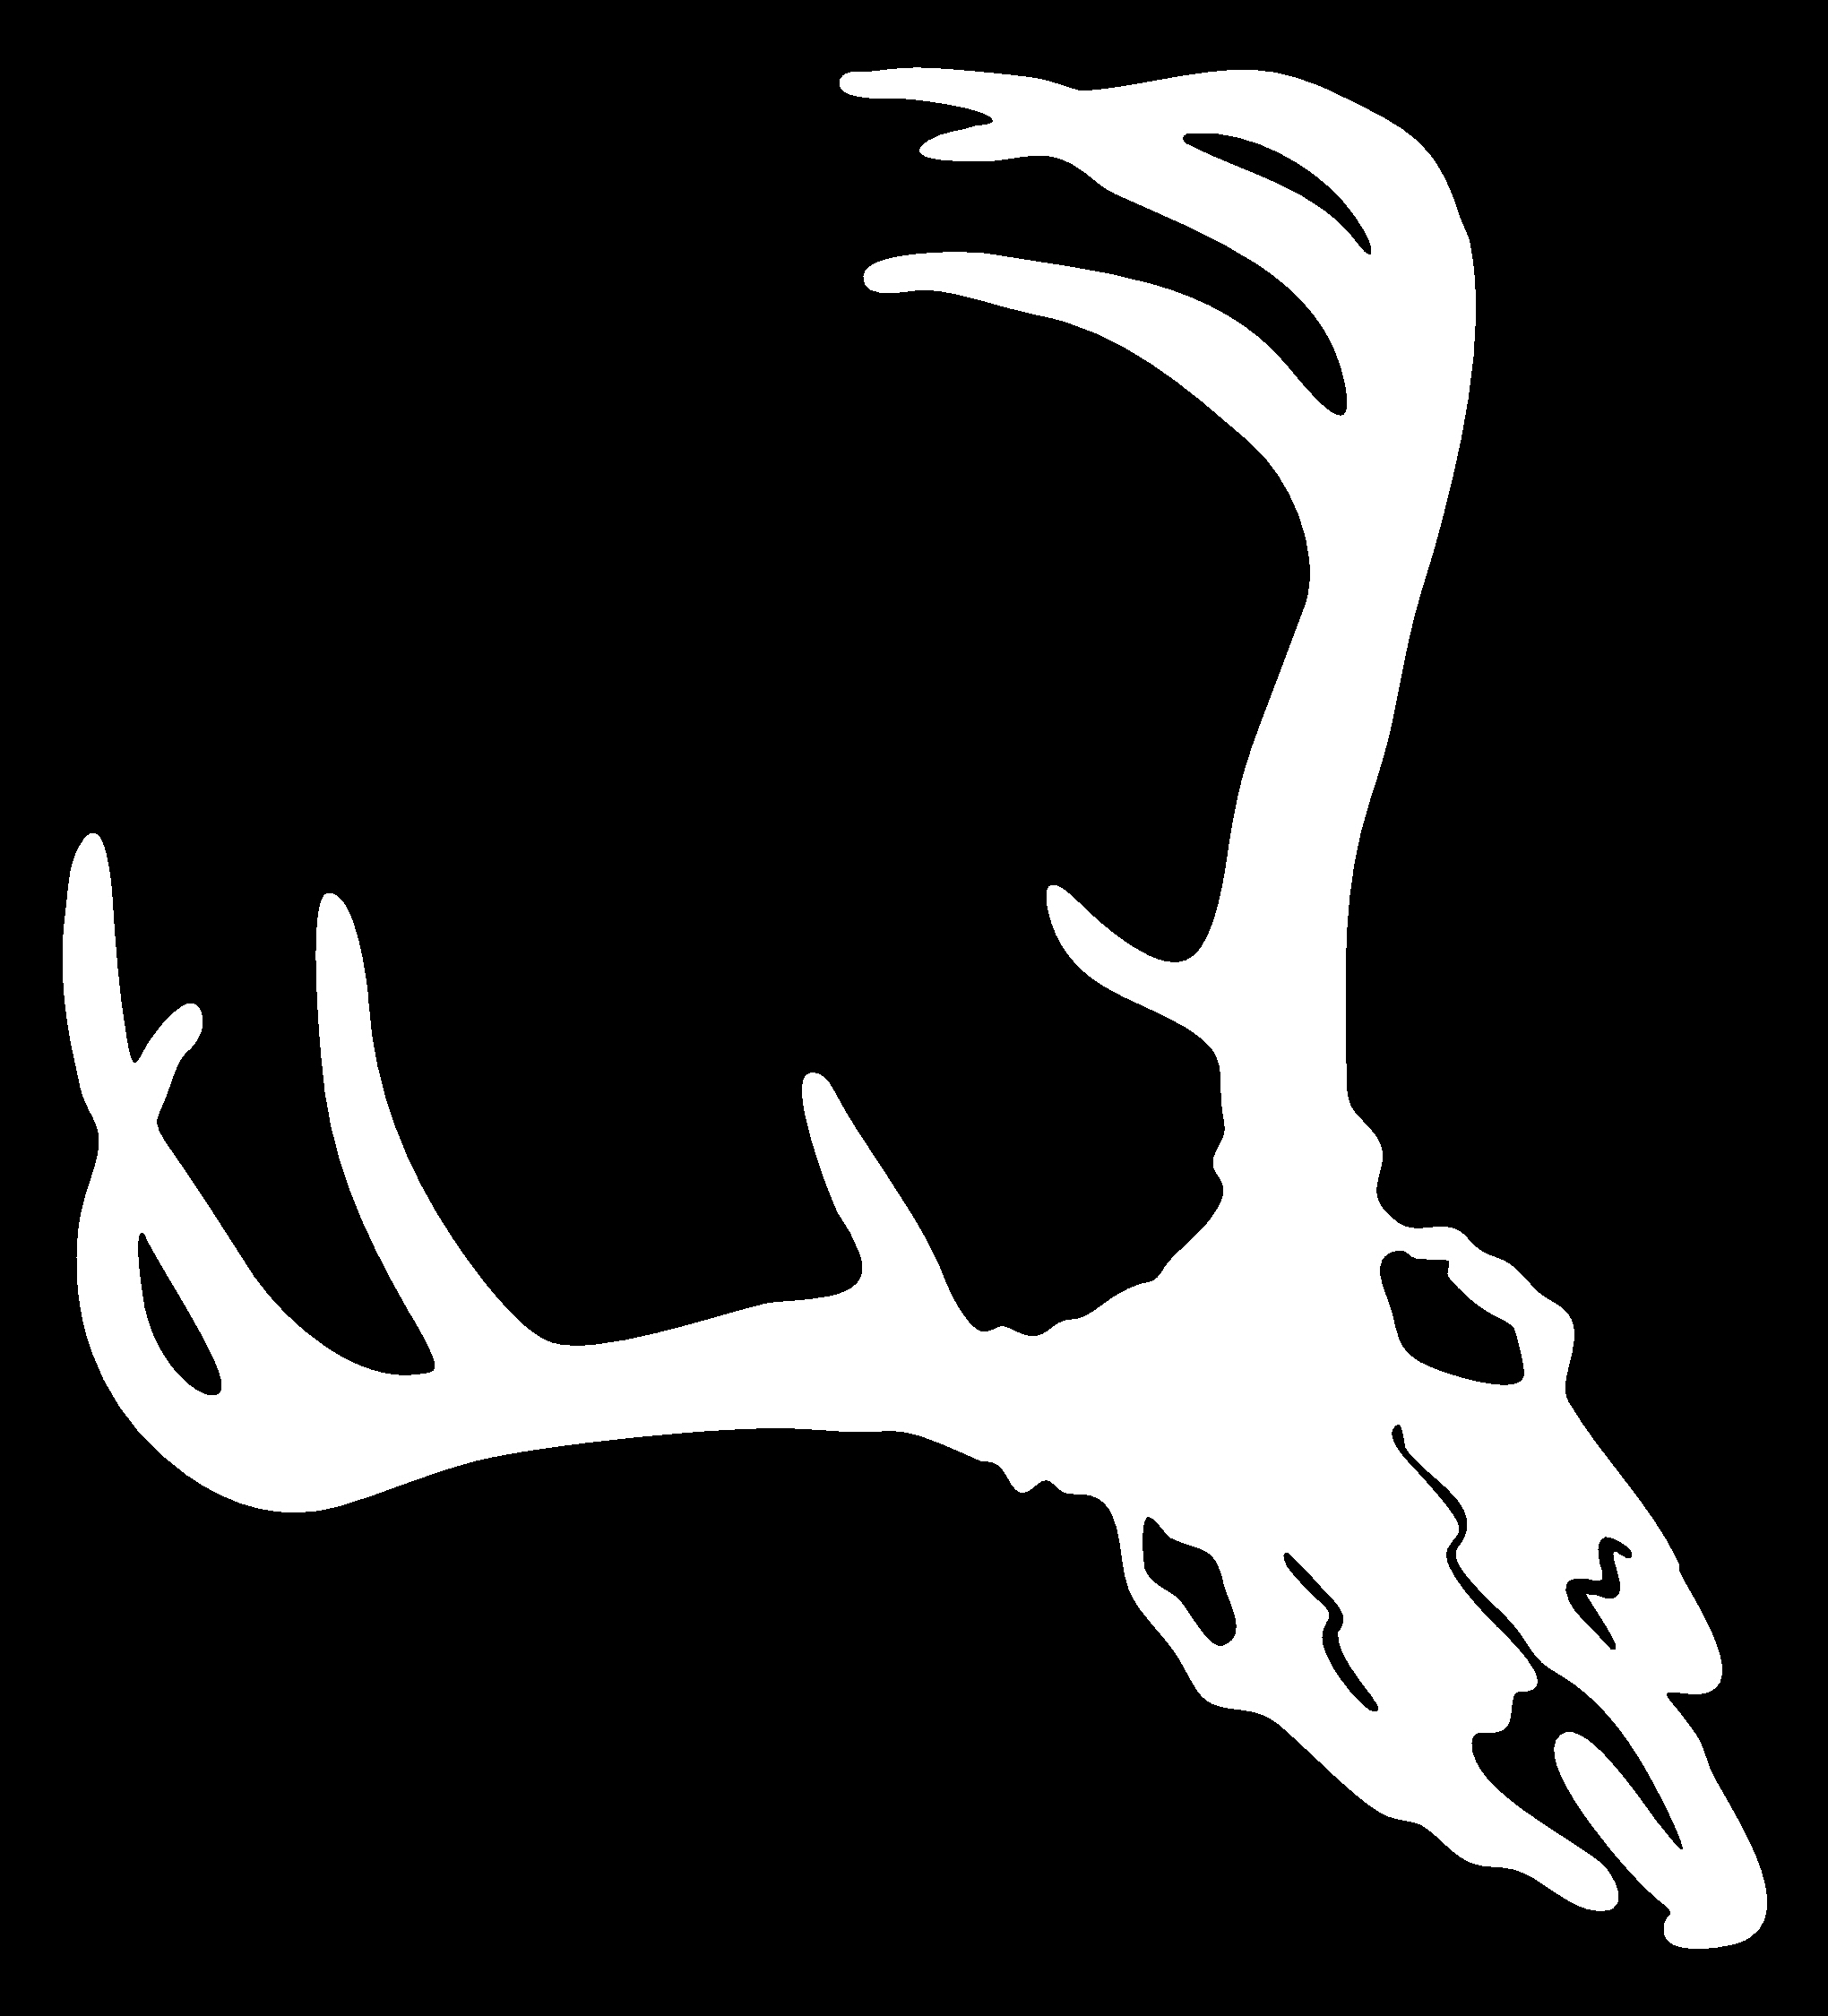 Deer Skull Pictures - ClipArt Best